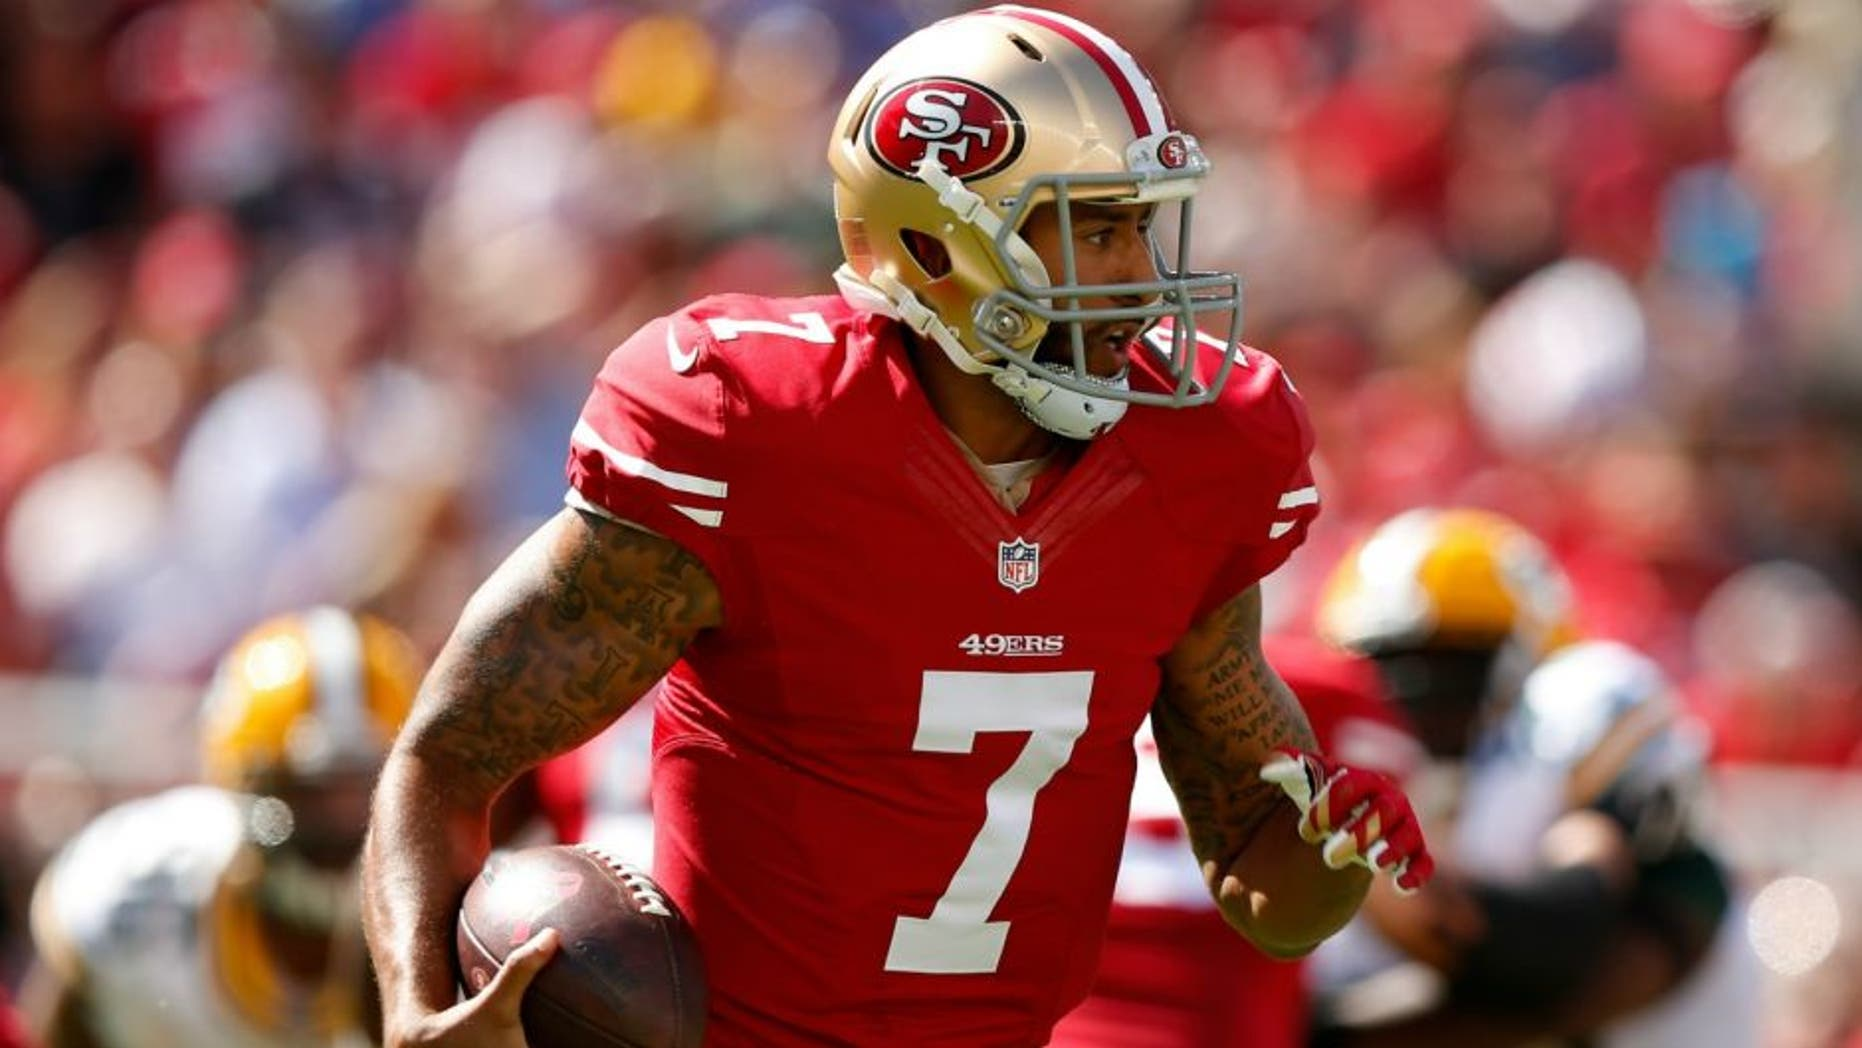 during their NFL game at Levi's Stadium on October 4, 2015 in Santa Clara, California.,SANTA CLARA, CA - OCTOBER 04: Quarterback Colin Kaepernick #7 of the San Francisco 49ers runs with the ball against the Green Bay Packers during their NFL game at Levi's Stadium on October 4, 2015 in Santa Clara, California. (Photo by Ezra Shaw/Getty Images)